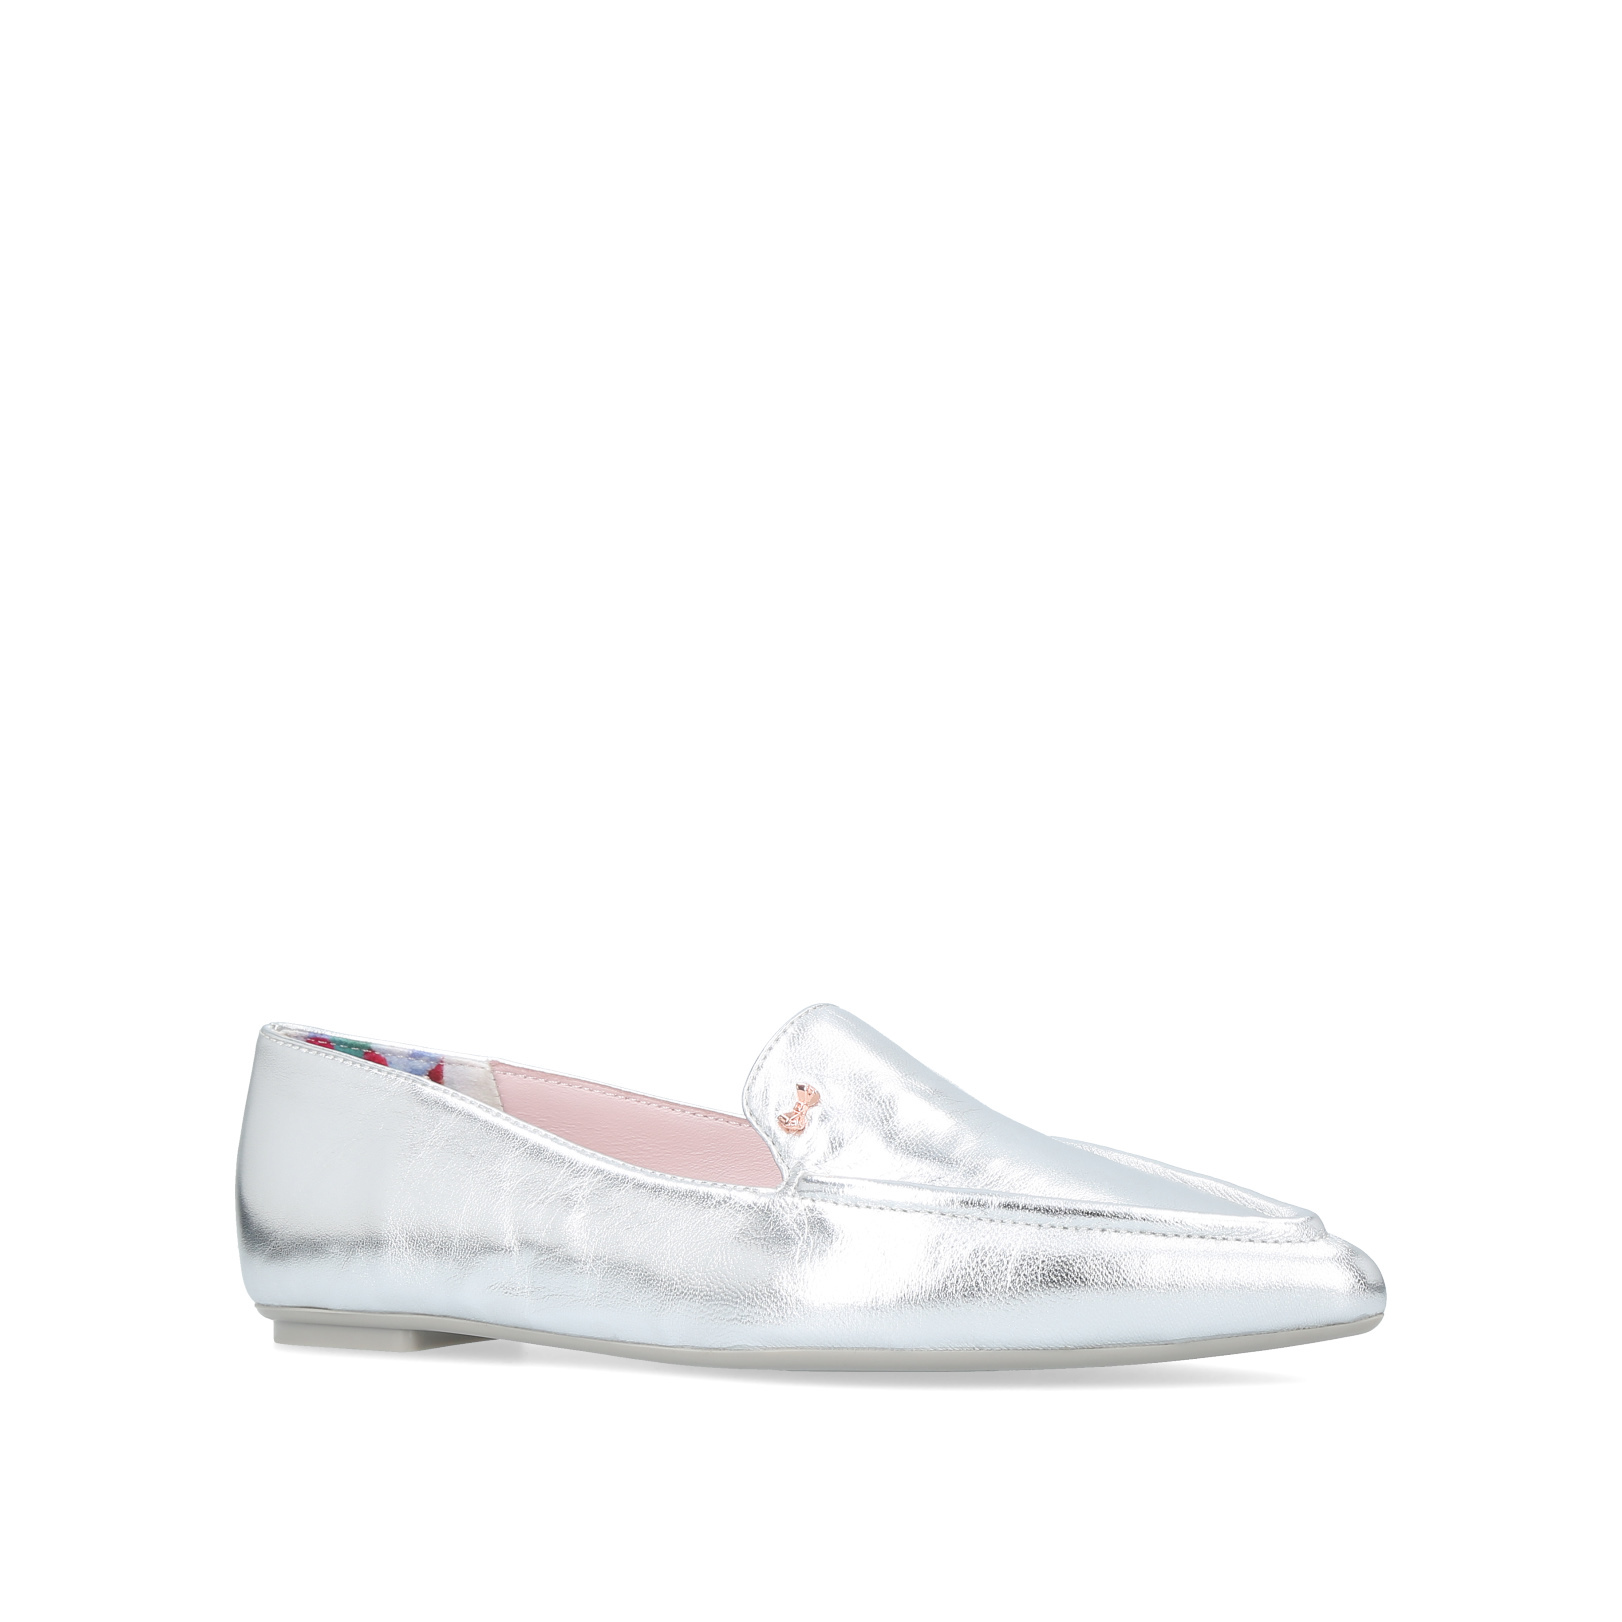 a8d8726d6f87af SHLIM Ted Baker Shlim Silver Leather Flats by TED BAKER